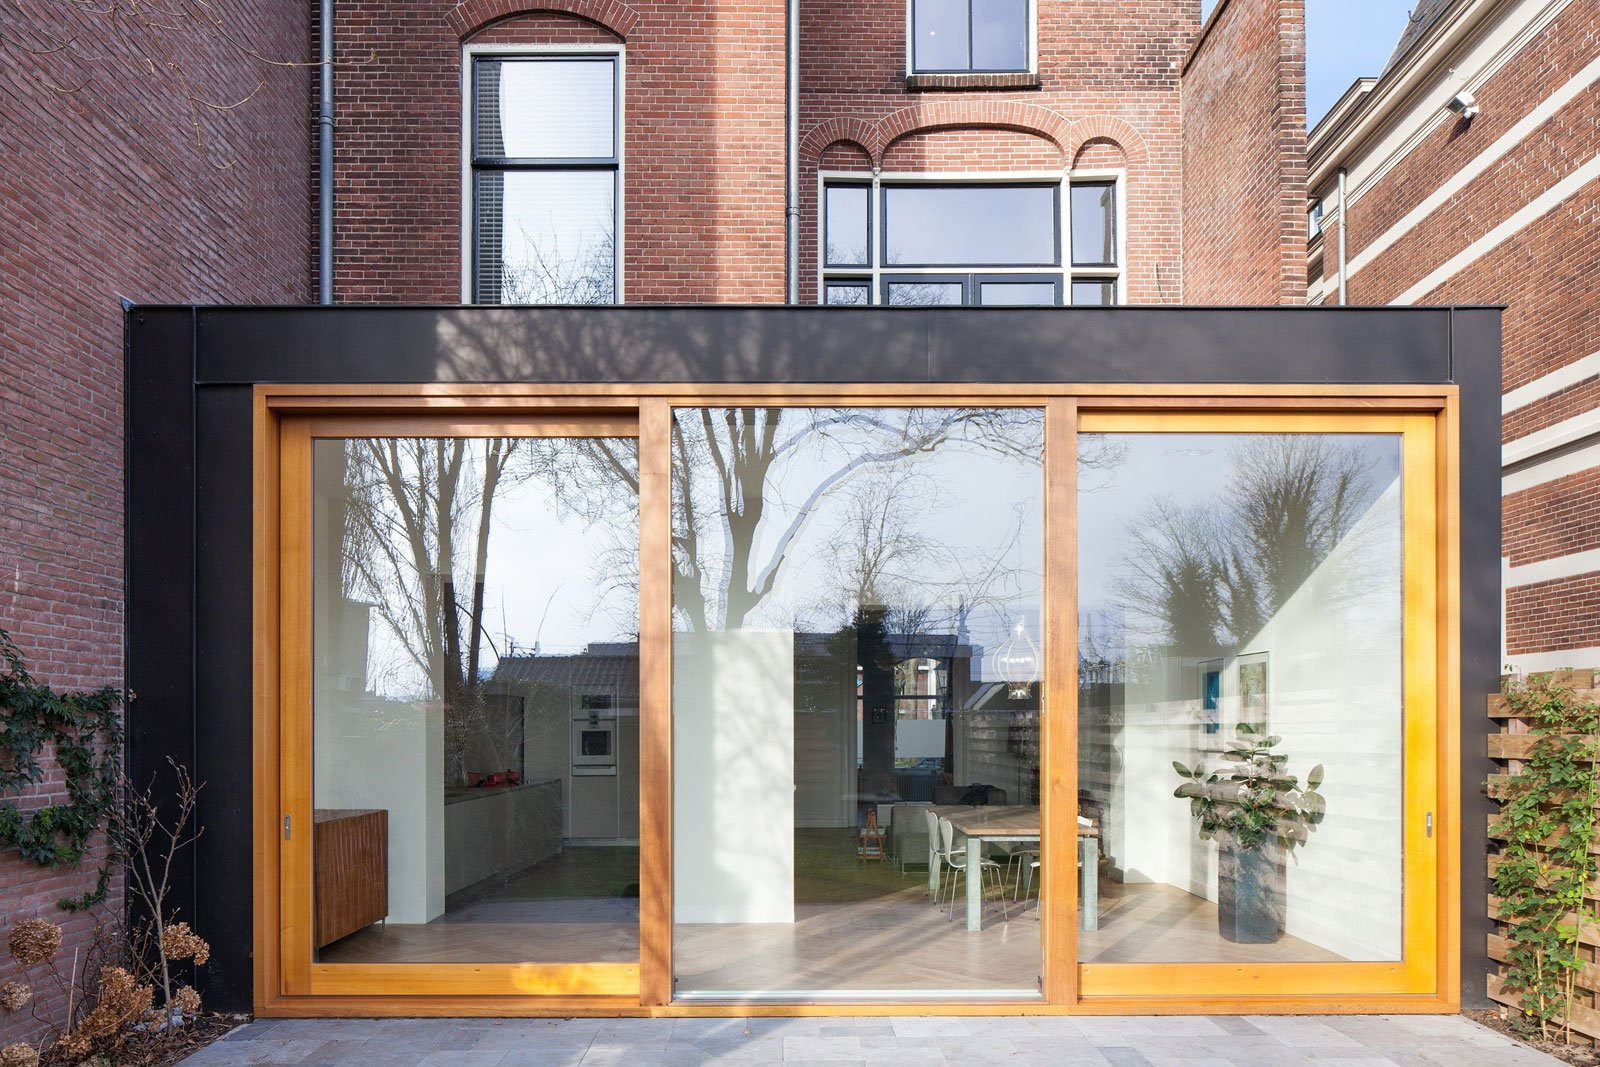 Extension-Maliebaan-Utrecht-02